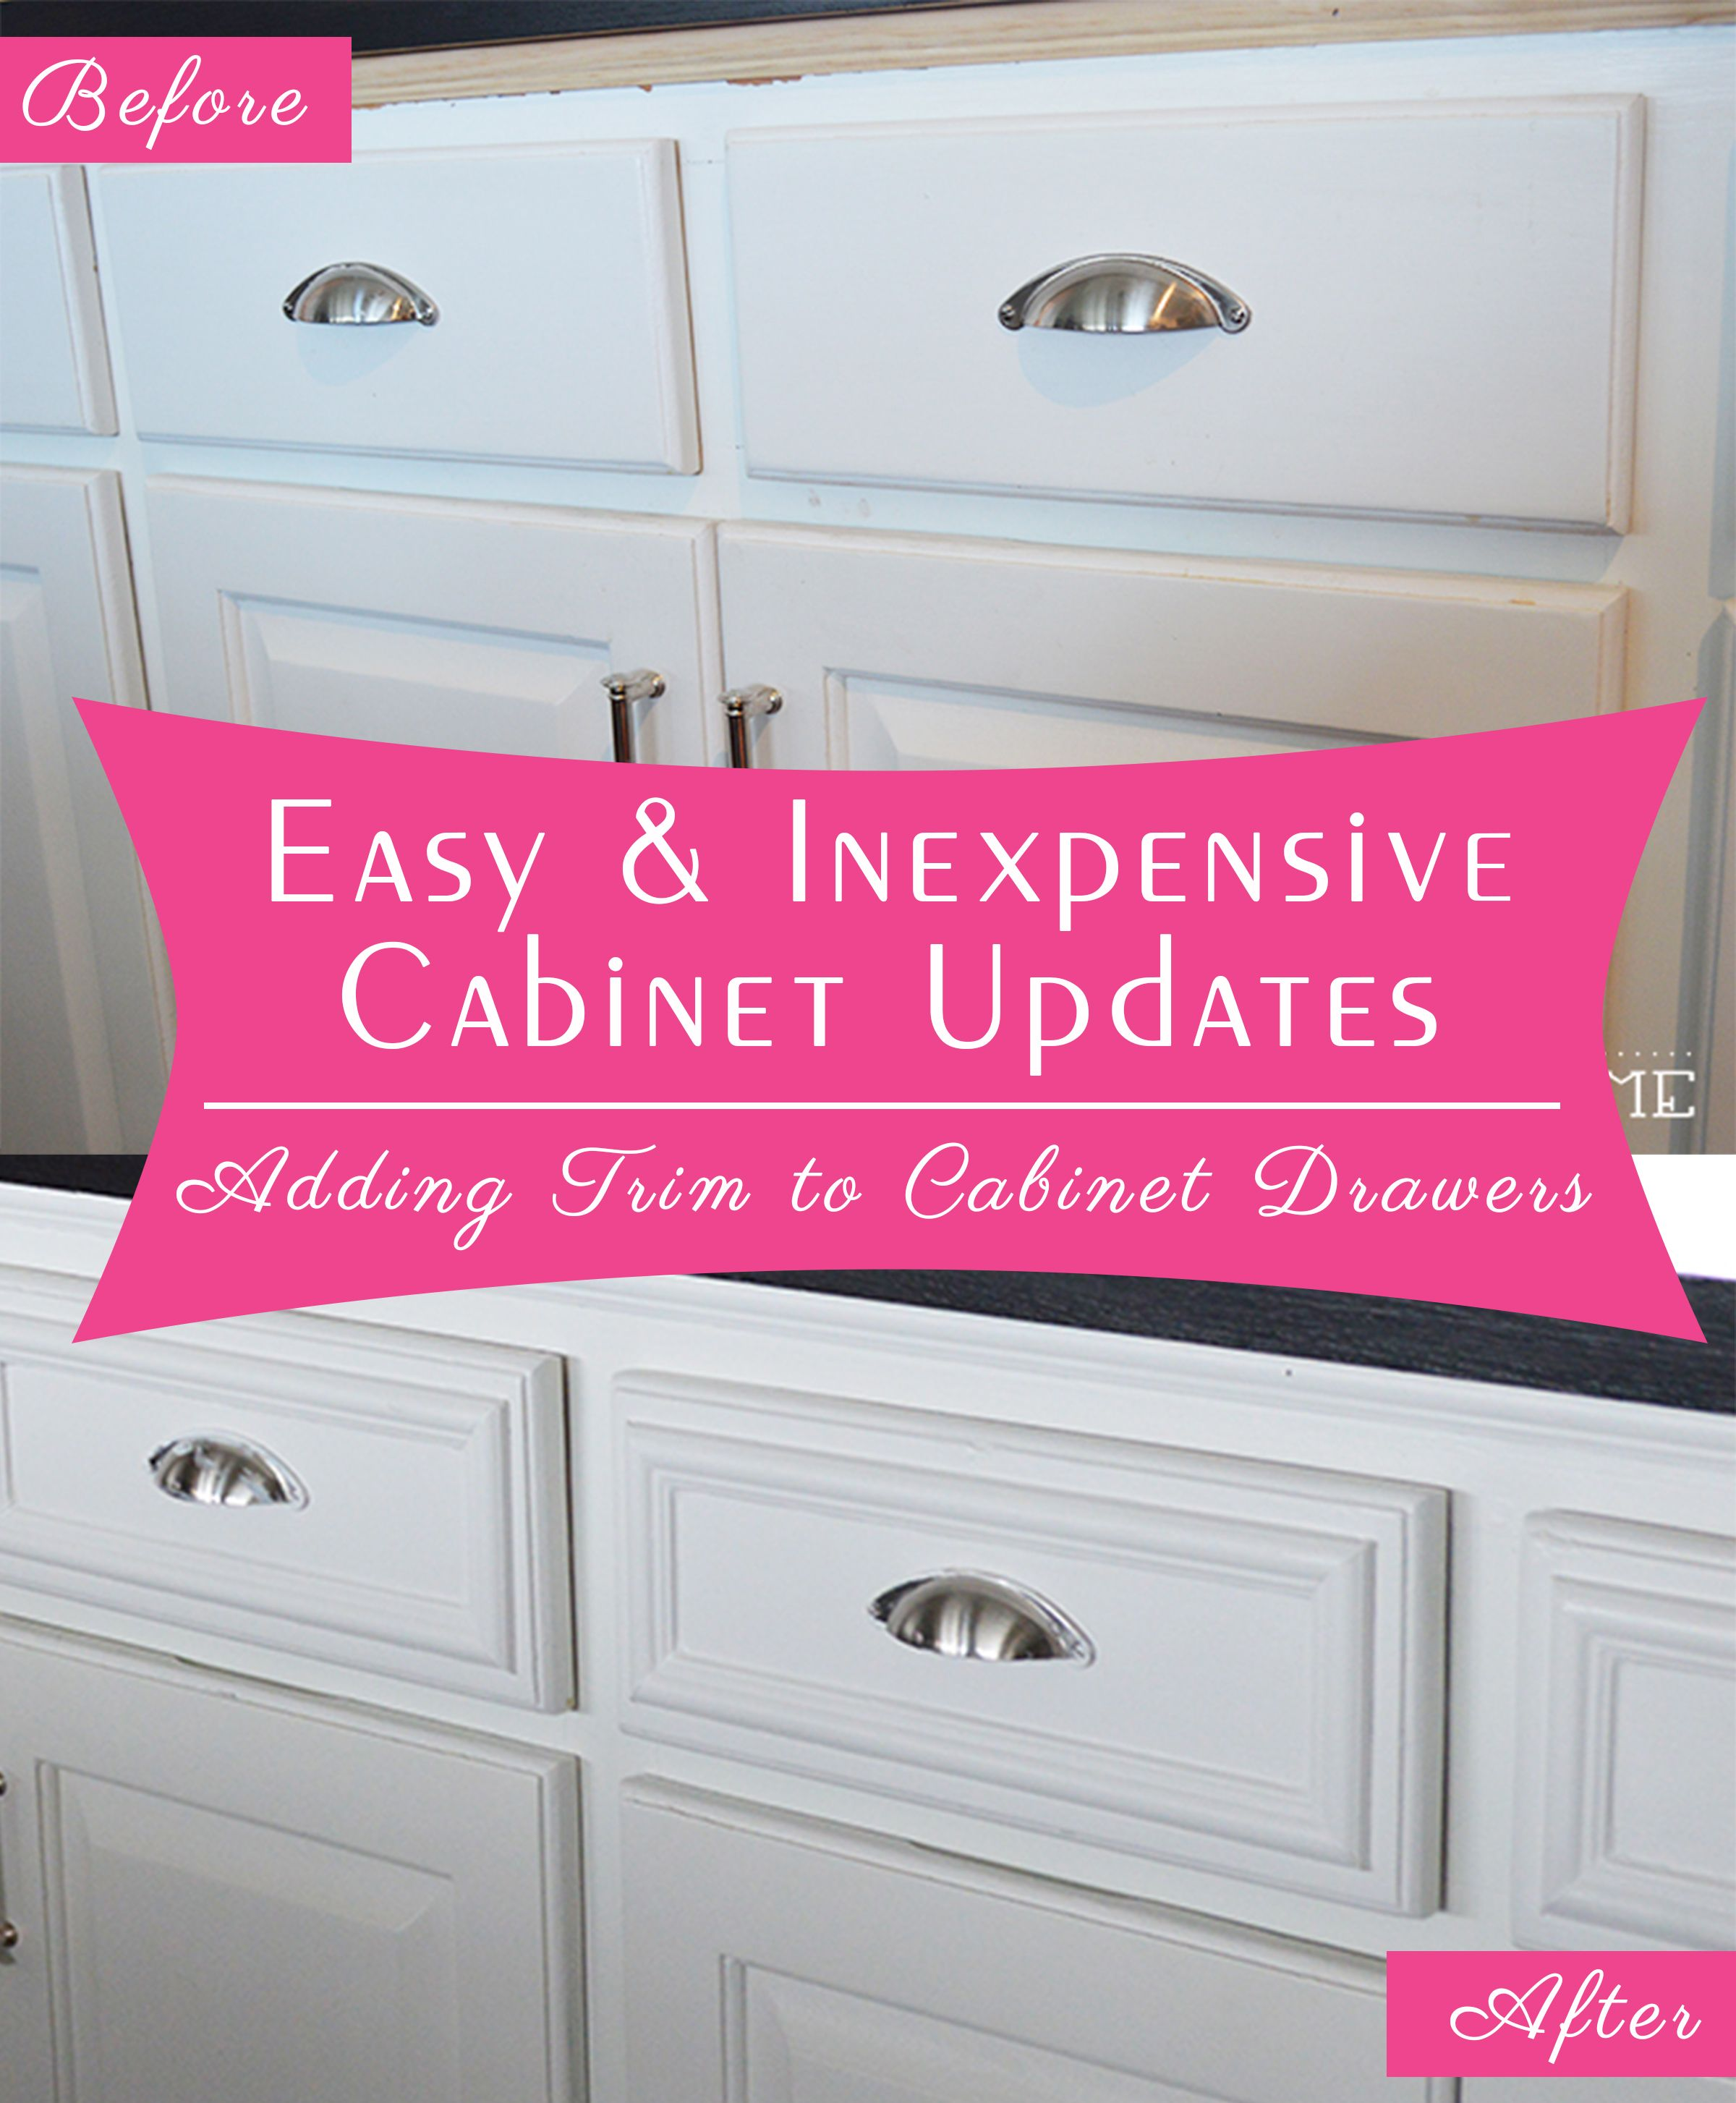 Easy And Inexpensive Cabinet Updates How To Add Trim Drawers Kitchen